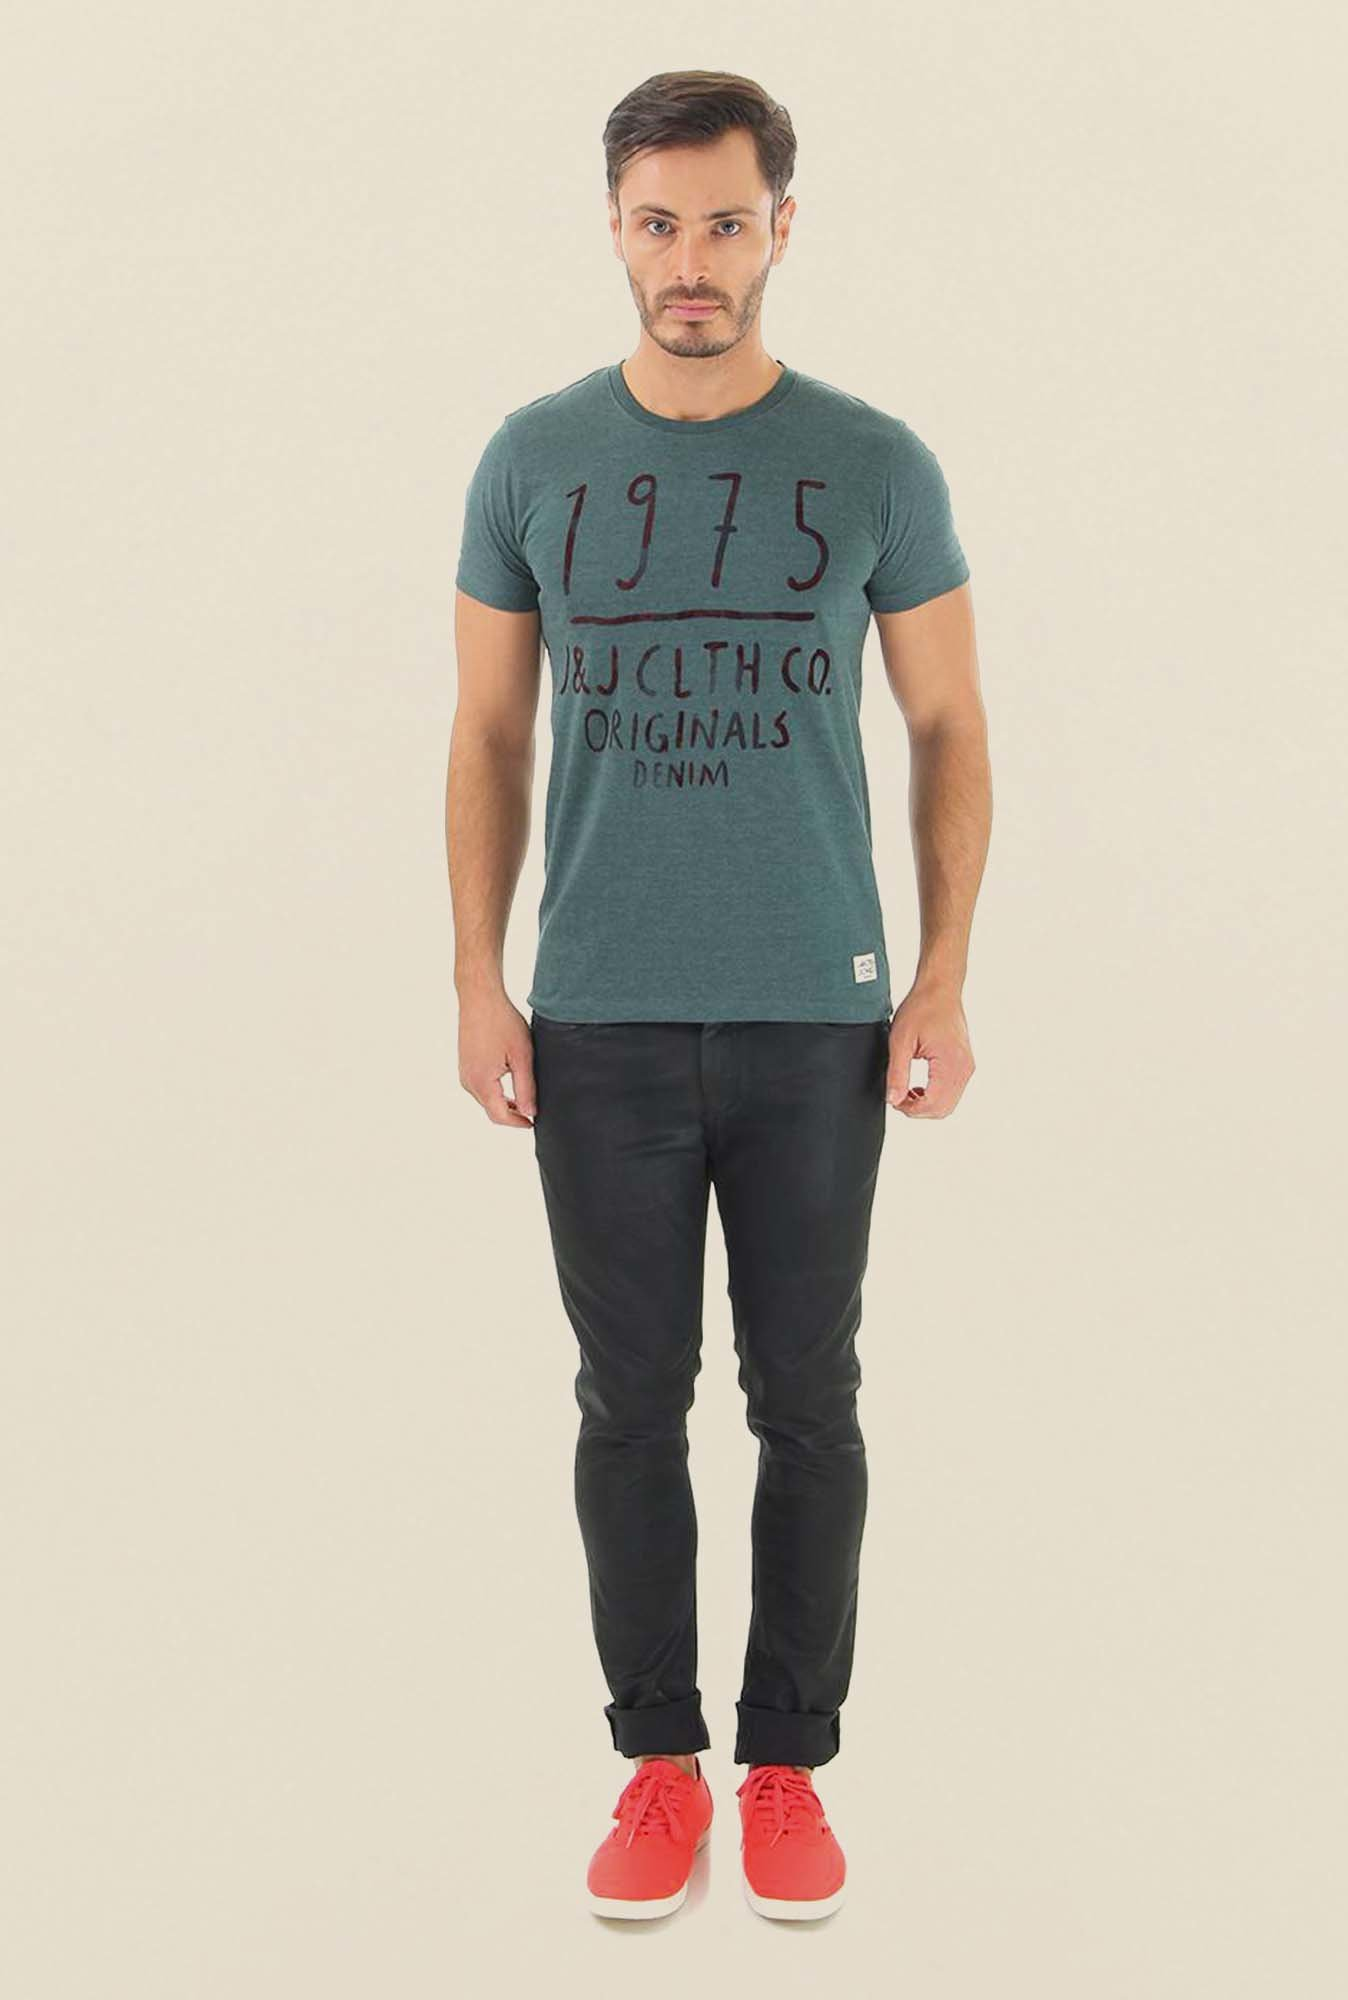 Jack & Jones Green Printed Crew Neck T-Shirt